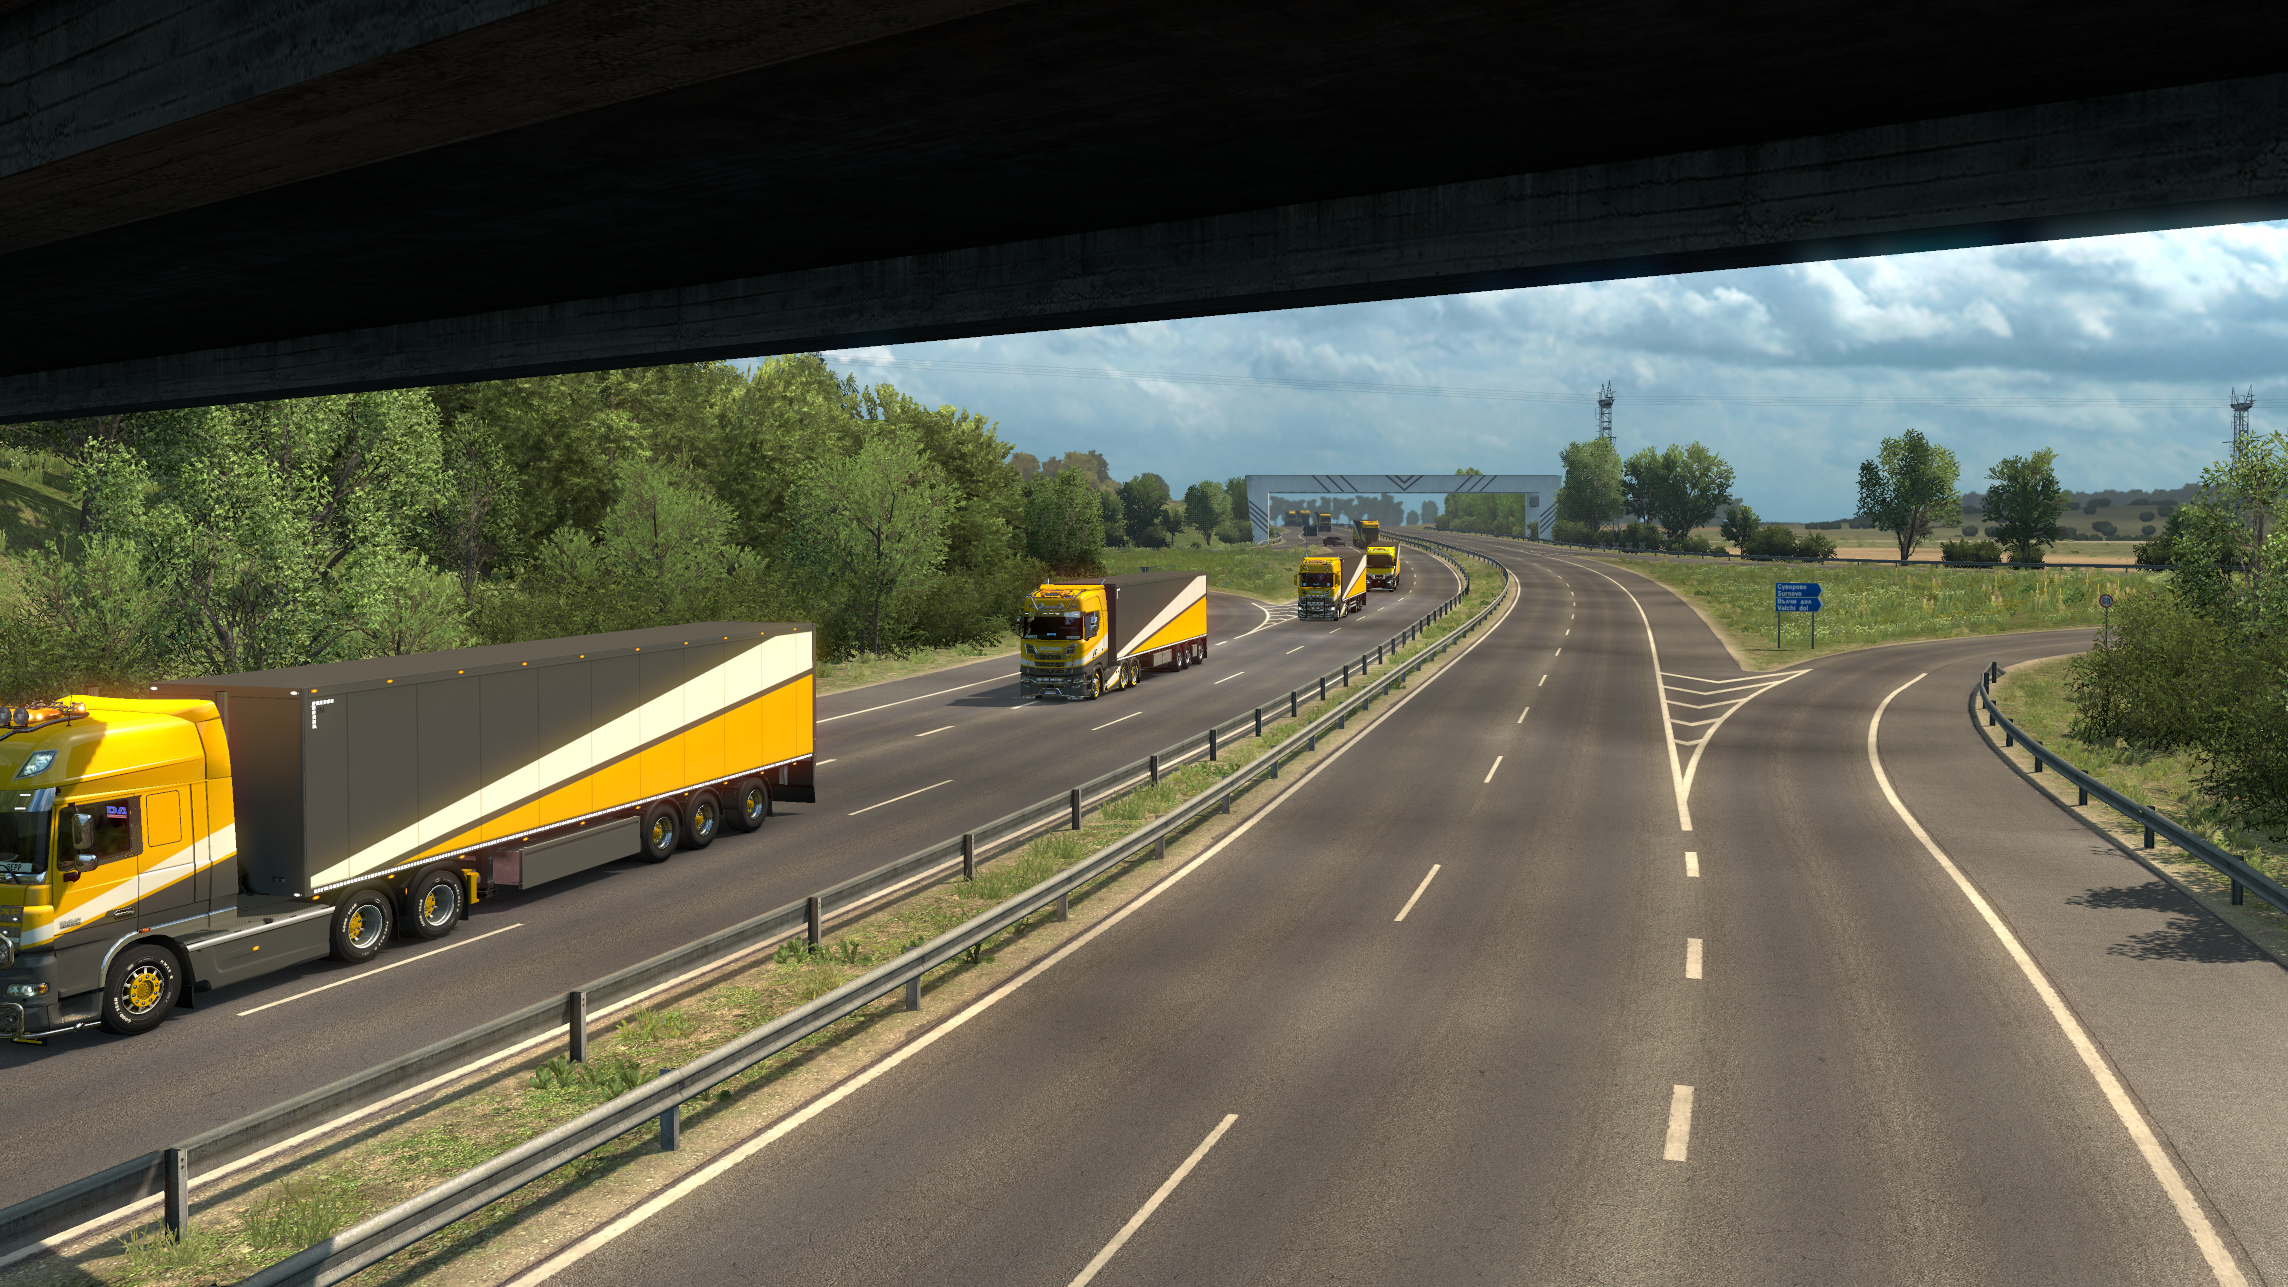 Euro-Truck-Simulator-2-Multiplayer-23_05_2020-20_23_56